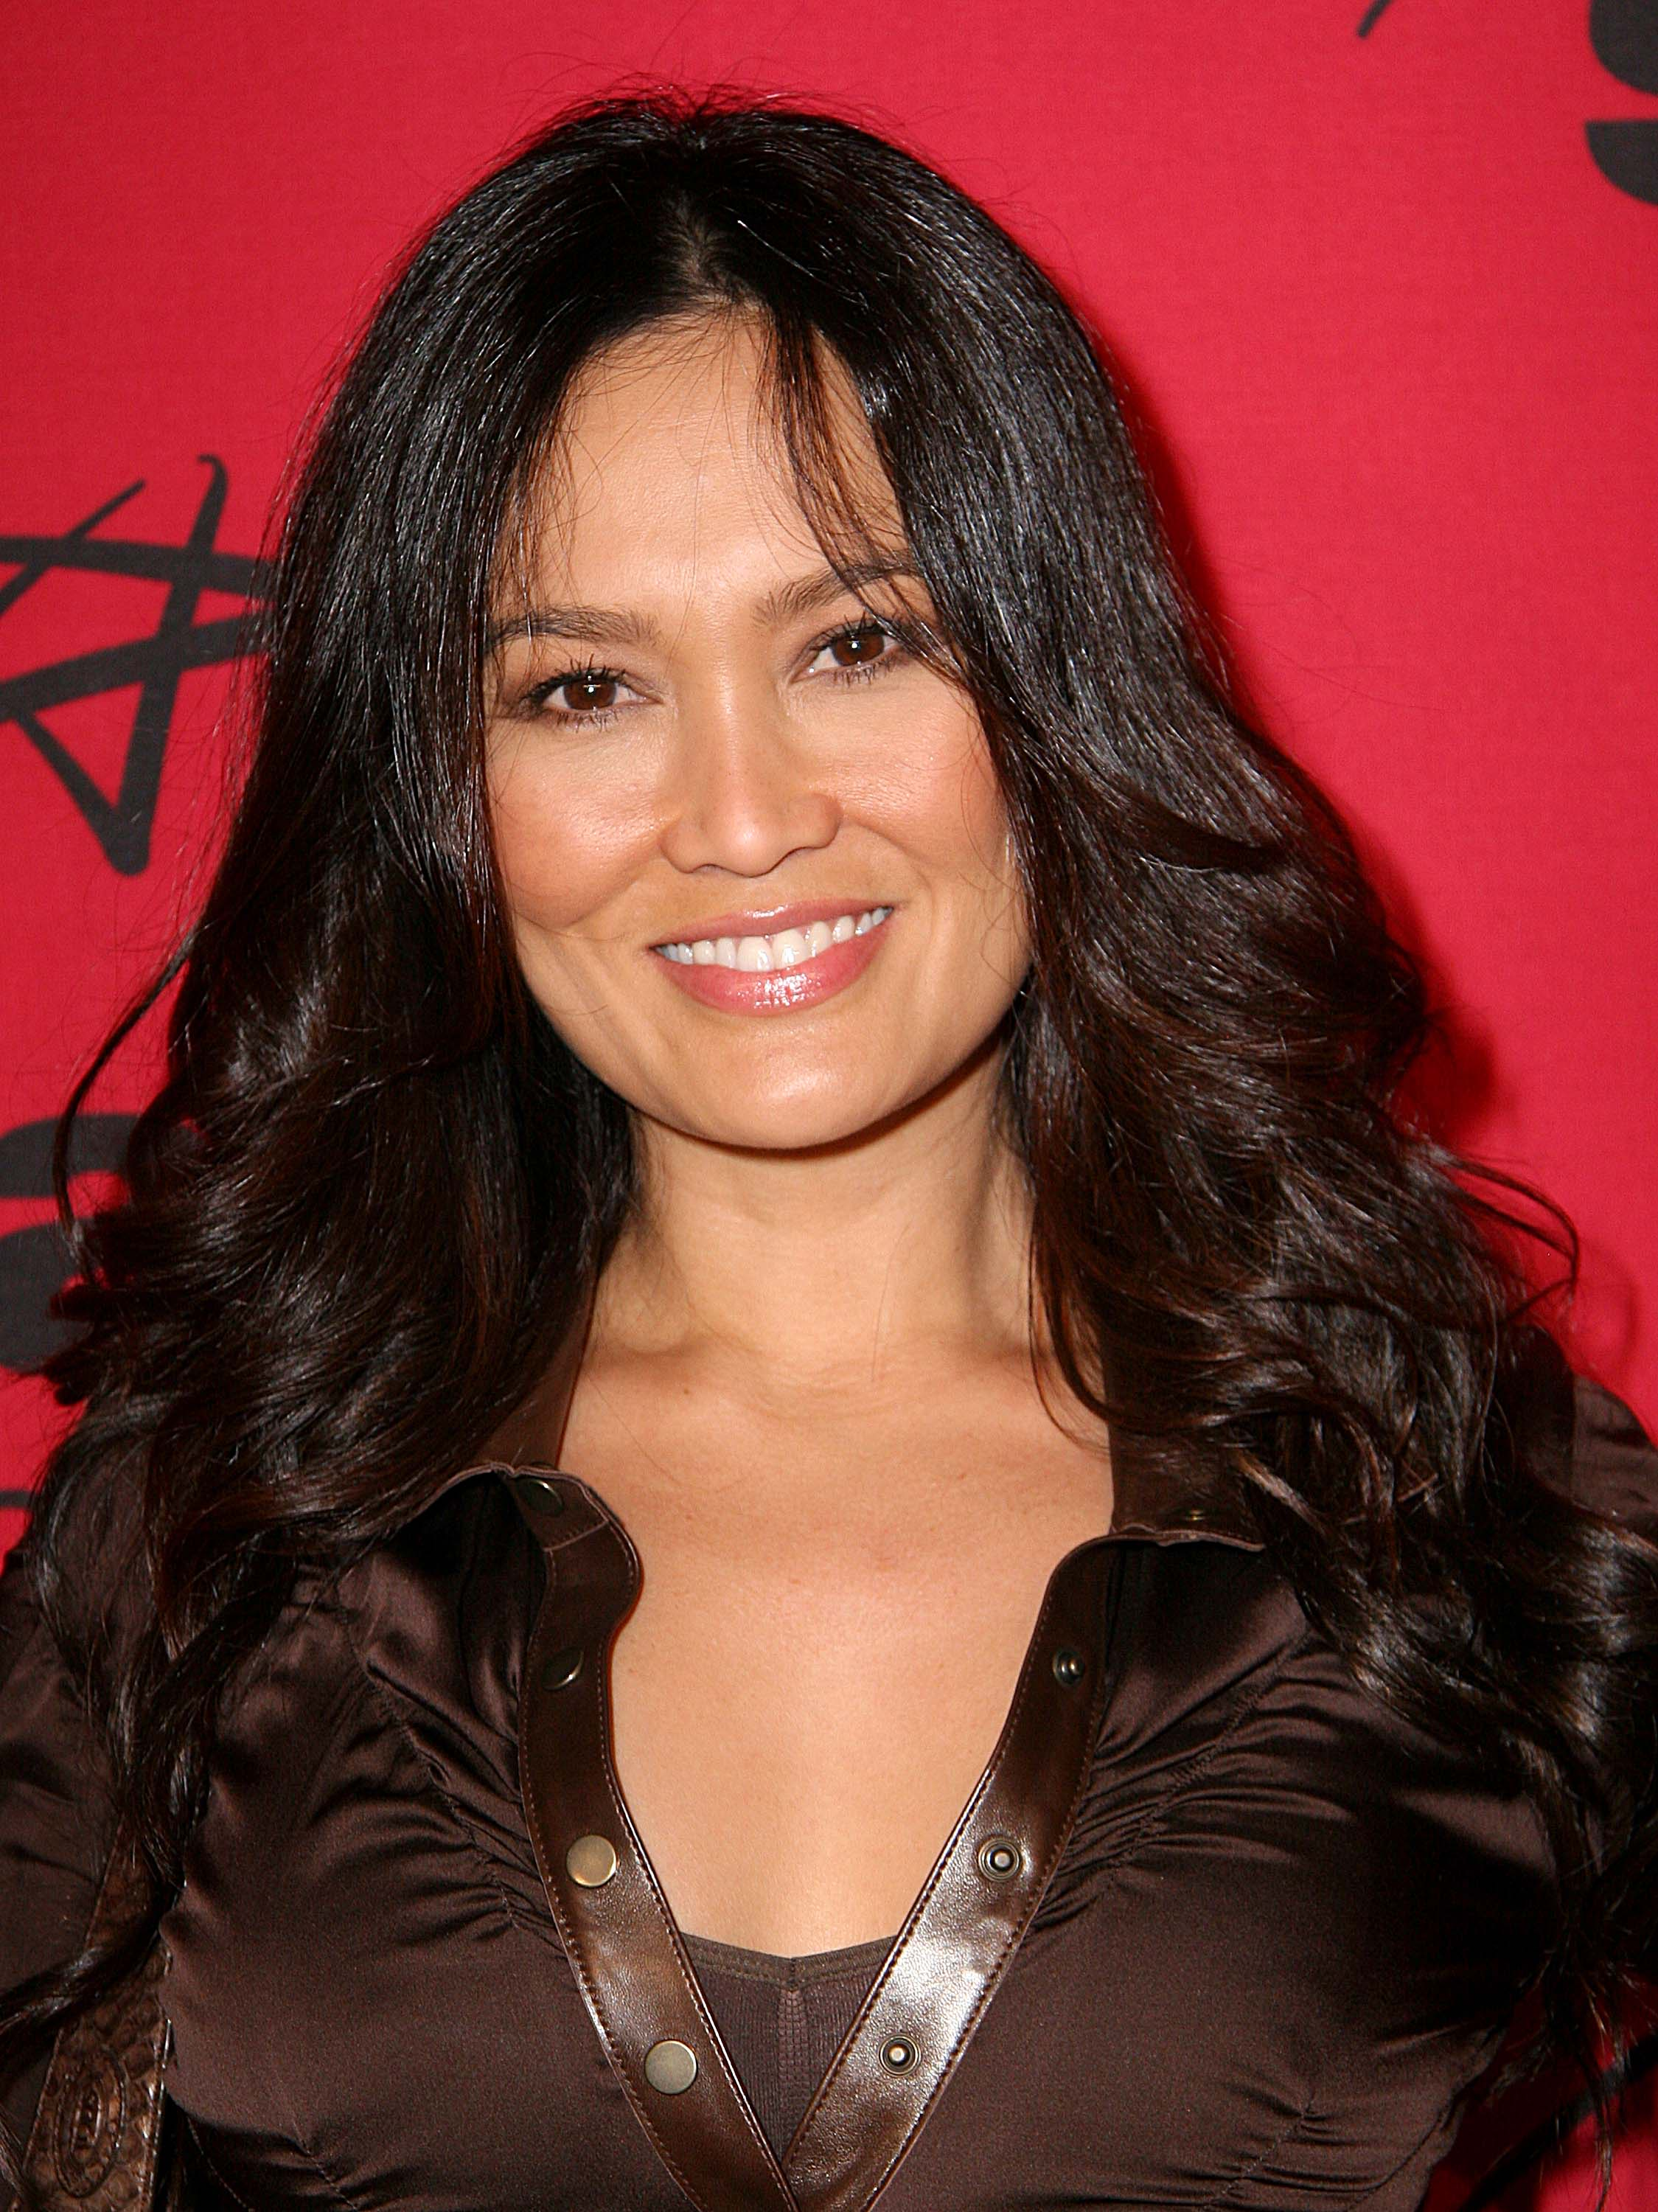 Tia Carrere Wallpapers High Quality Download Free